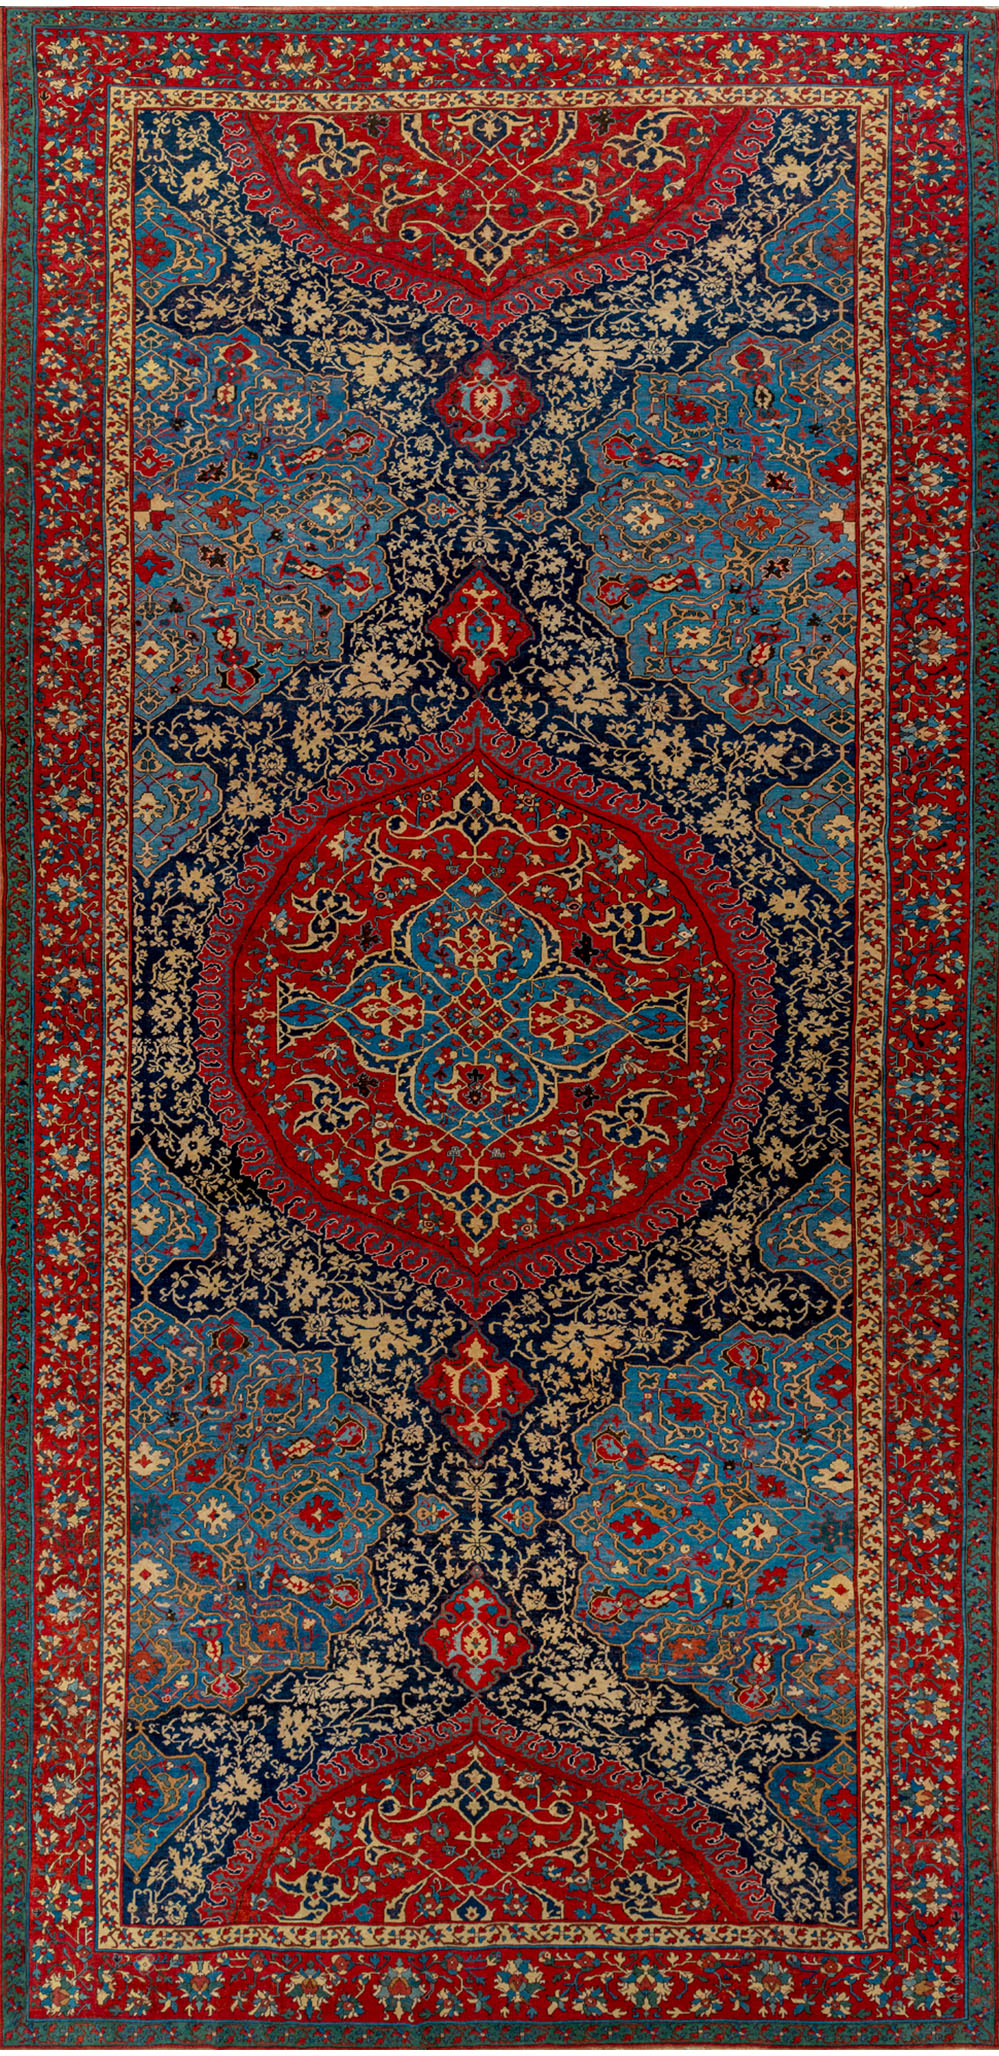 "Large-medallion Ushak carpet (after restoration), circa 1500–1510. 2.95 x 6.38 m (9' 8"" x 20' 11""). Private collection"